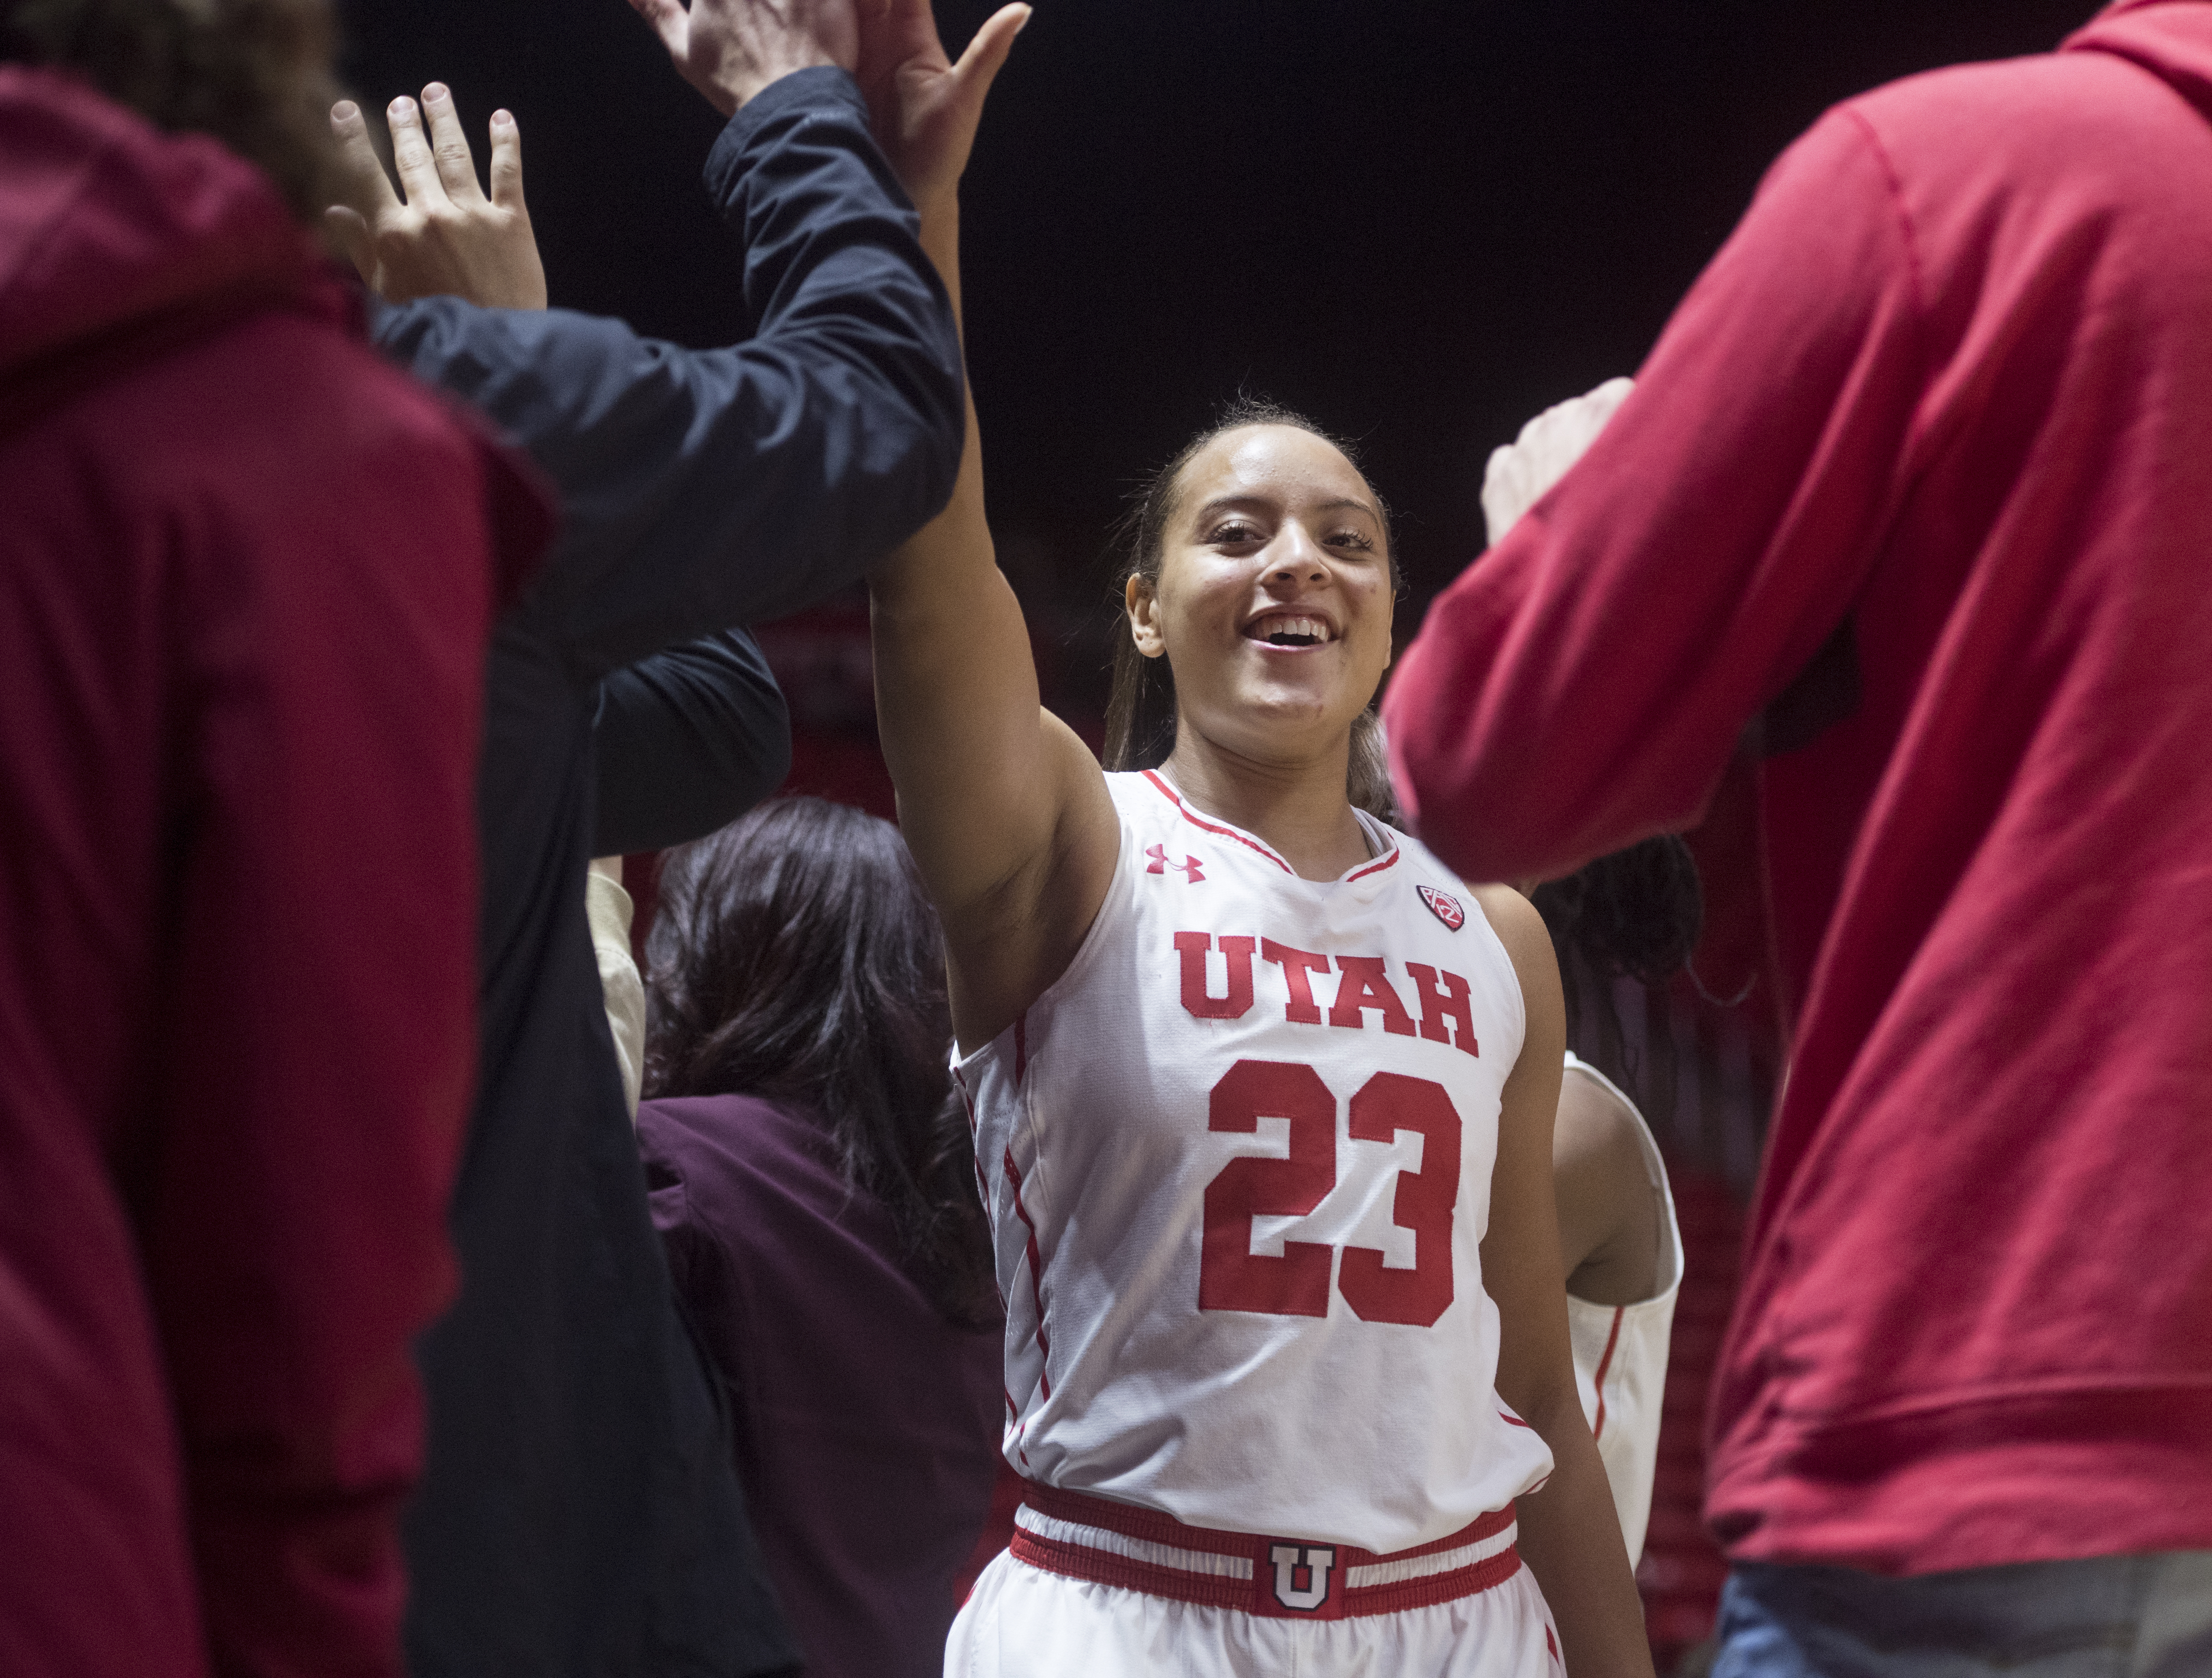 (Rick Egan  |  The Salt Lake Tribune)  Utah Utes guard/forward Daneesha Provo (23) high- fives fans after the Utes defeated the Boilermakers 81-68, in basketball action Utah Utes vs. Purdue Boilermakers, at the Thomas M. Huntsman Center, Monday, November 20, 2017.